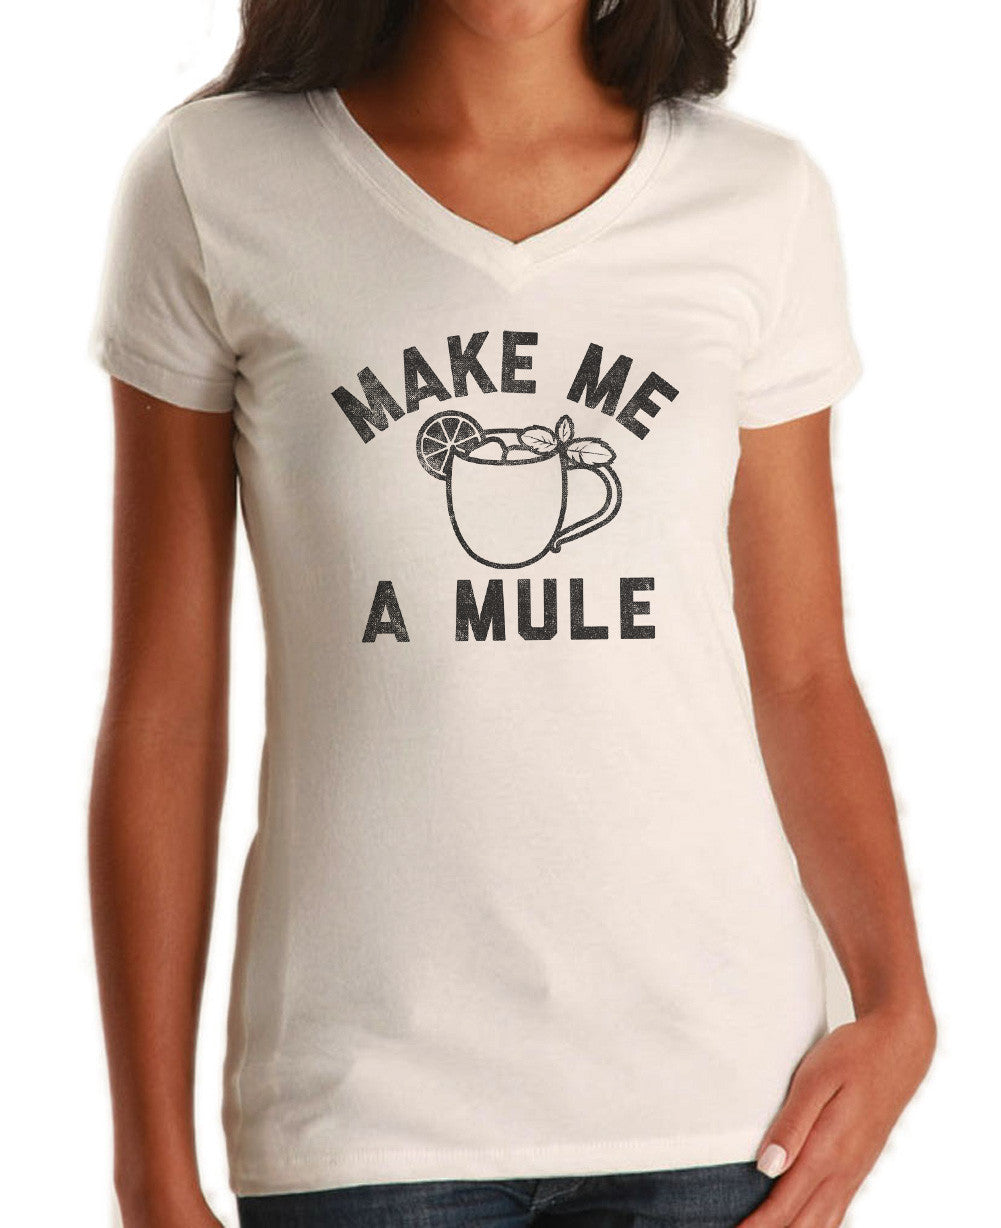 Women's Make Me a Moscow Mule Vneck T-Shirt - Funny Drinking Shirt